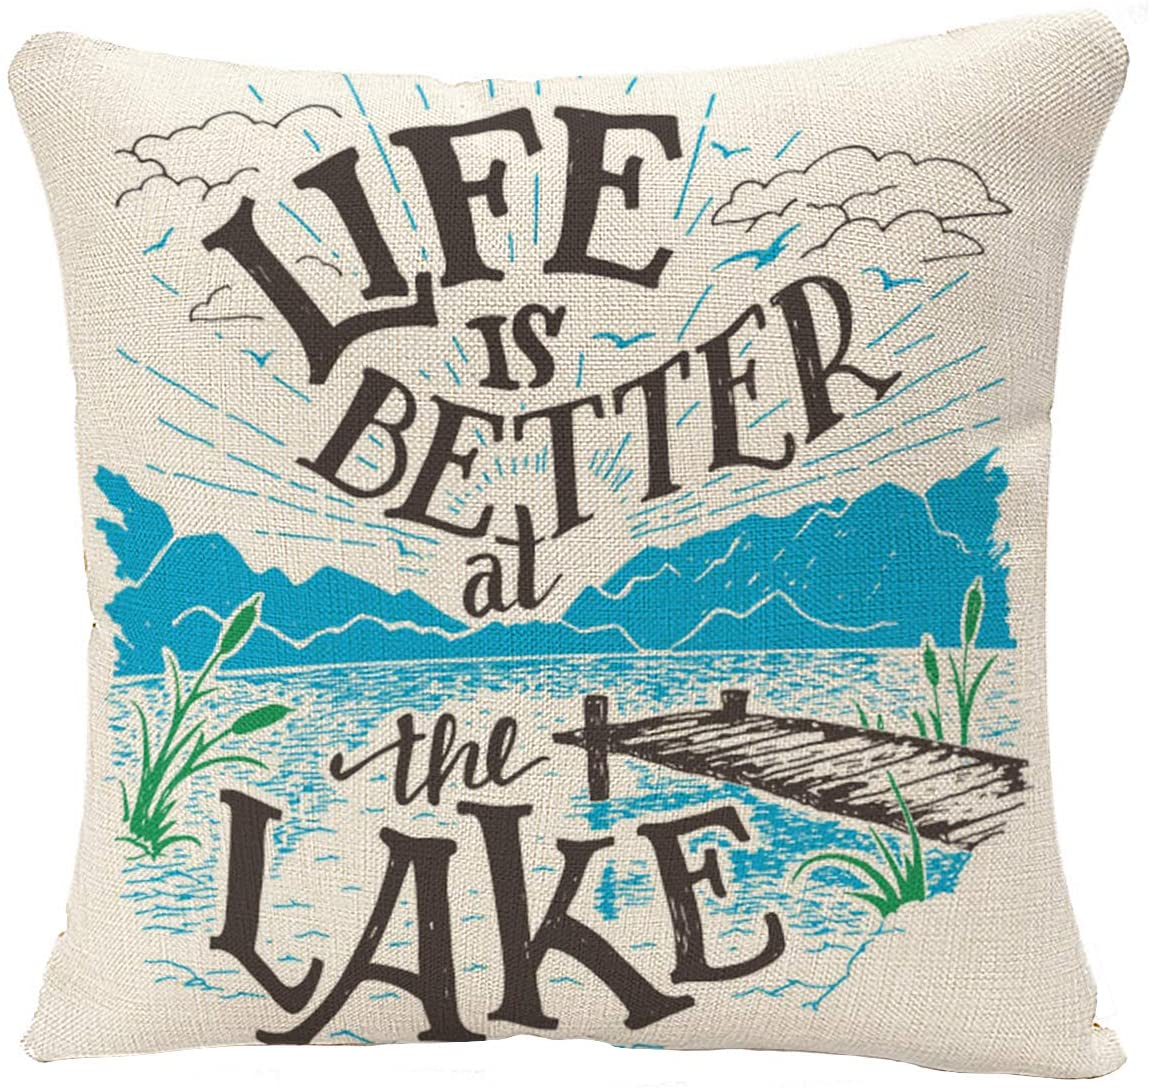 YGGQF Throw Pillow Cover Life is Better at The Lake House Sign in Vintage for Rustic Wall Lakeside Living Cabin Cottage Hand Decorative Pillow Case for Couch Sofa Bed Chair 18x18 Inch